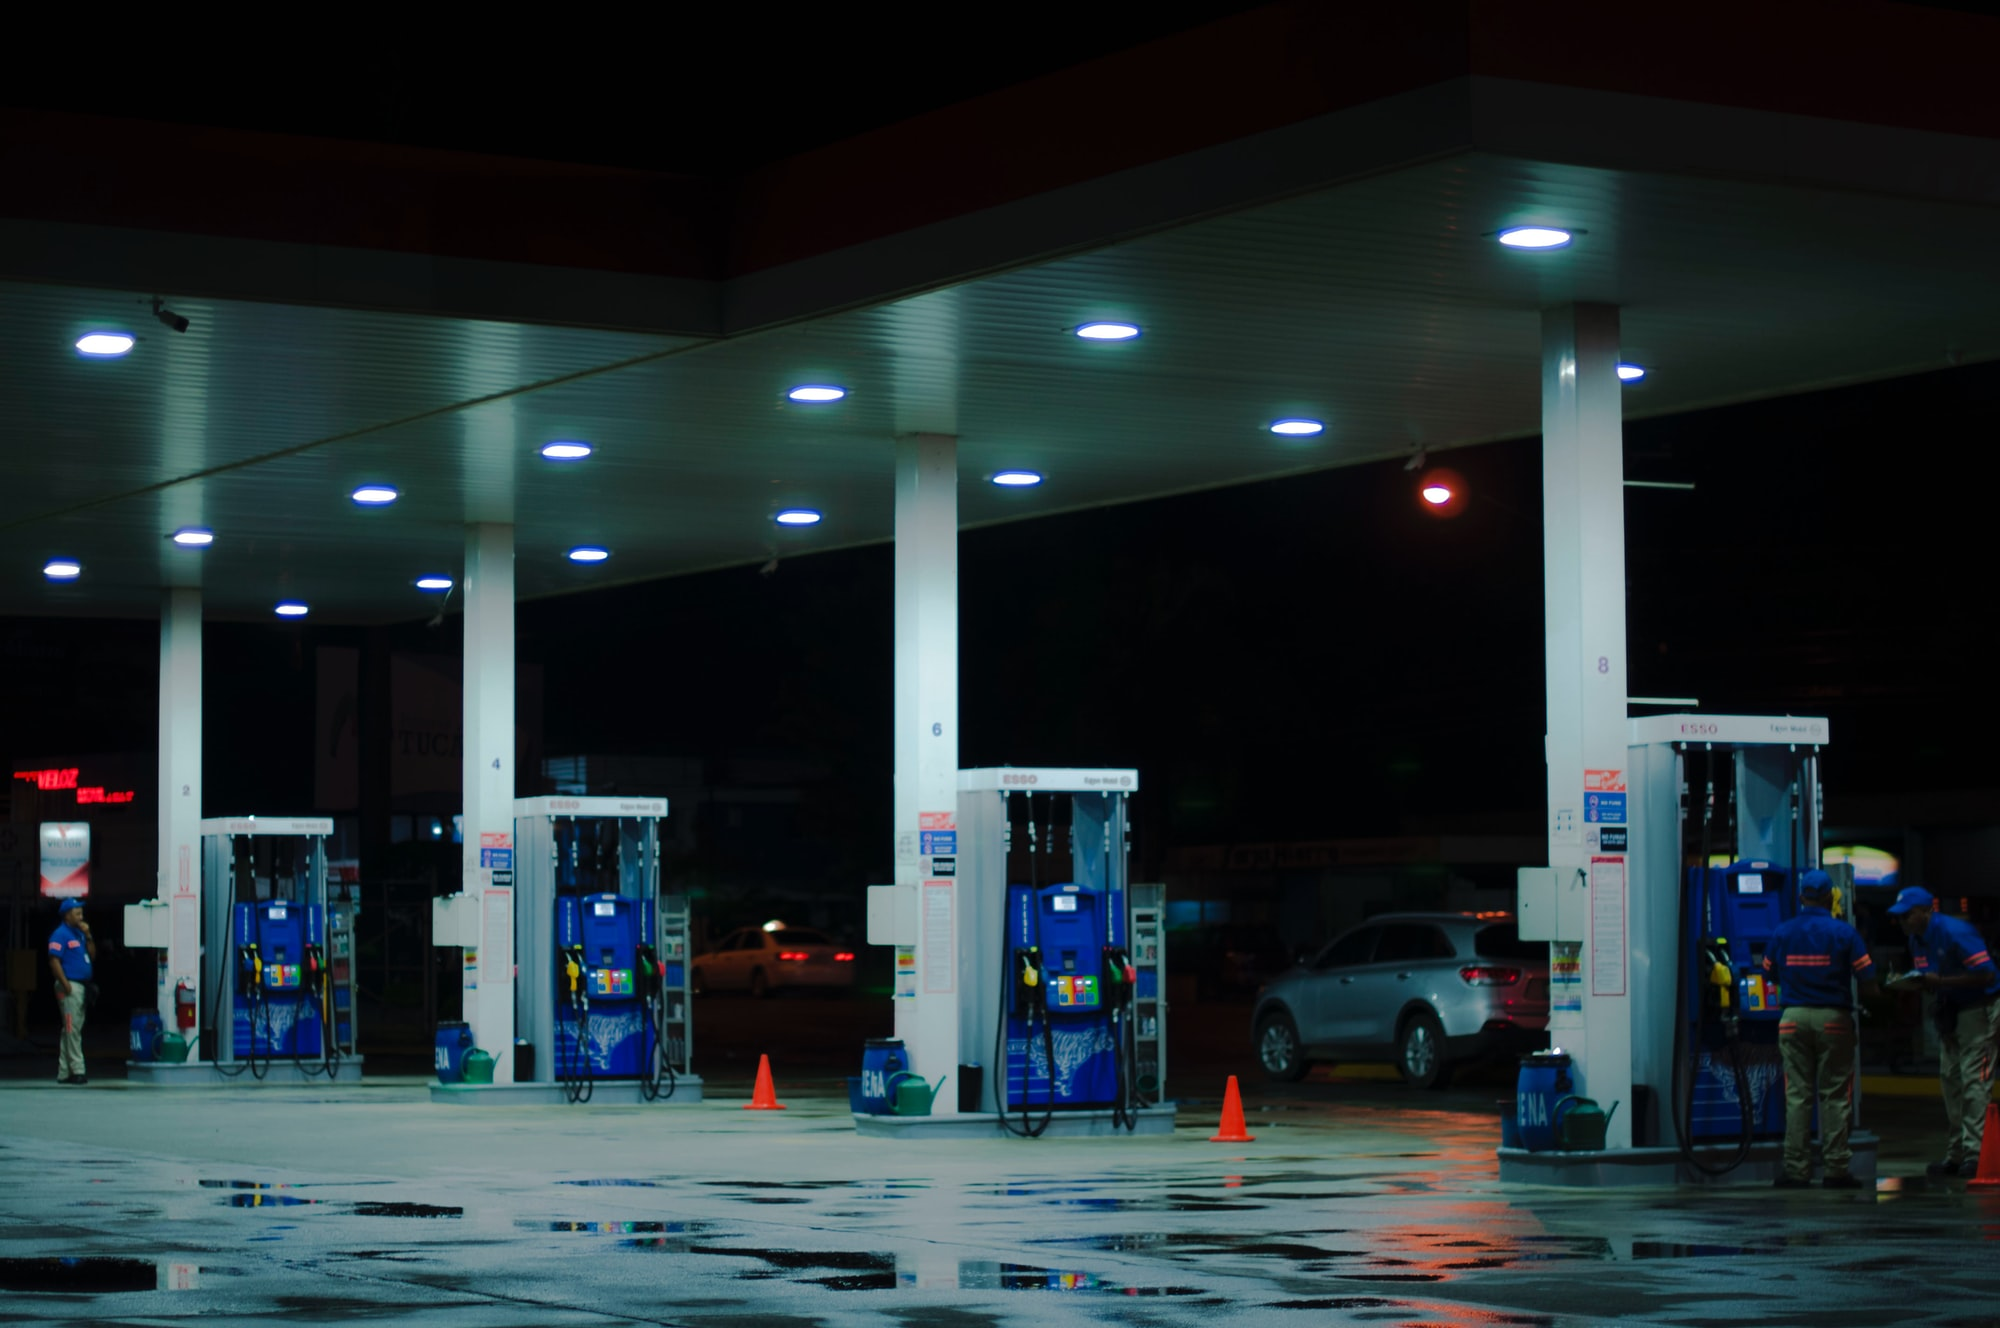 This data analytics company wants to disrupt the retail fuel industry in Africa